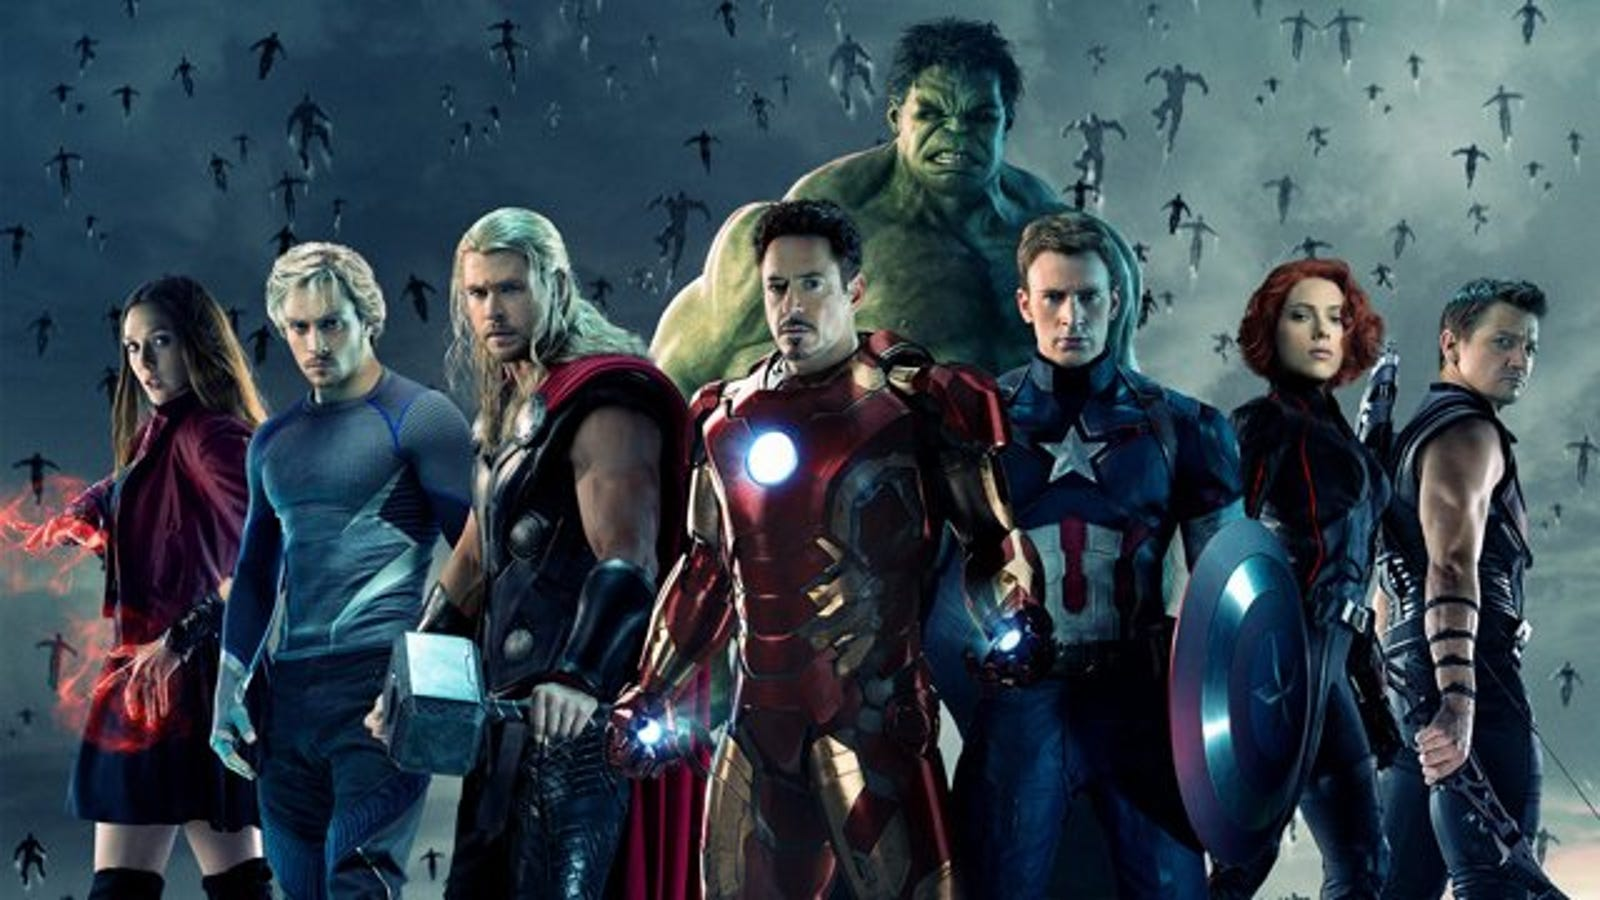 How Avengers: Age of Ultron's Skull-Crunching Sounds Were Made